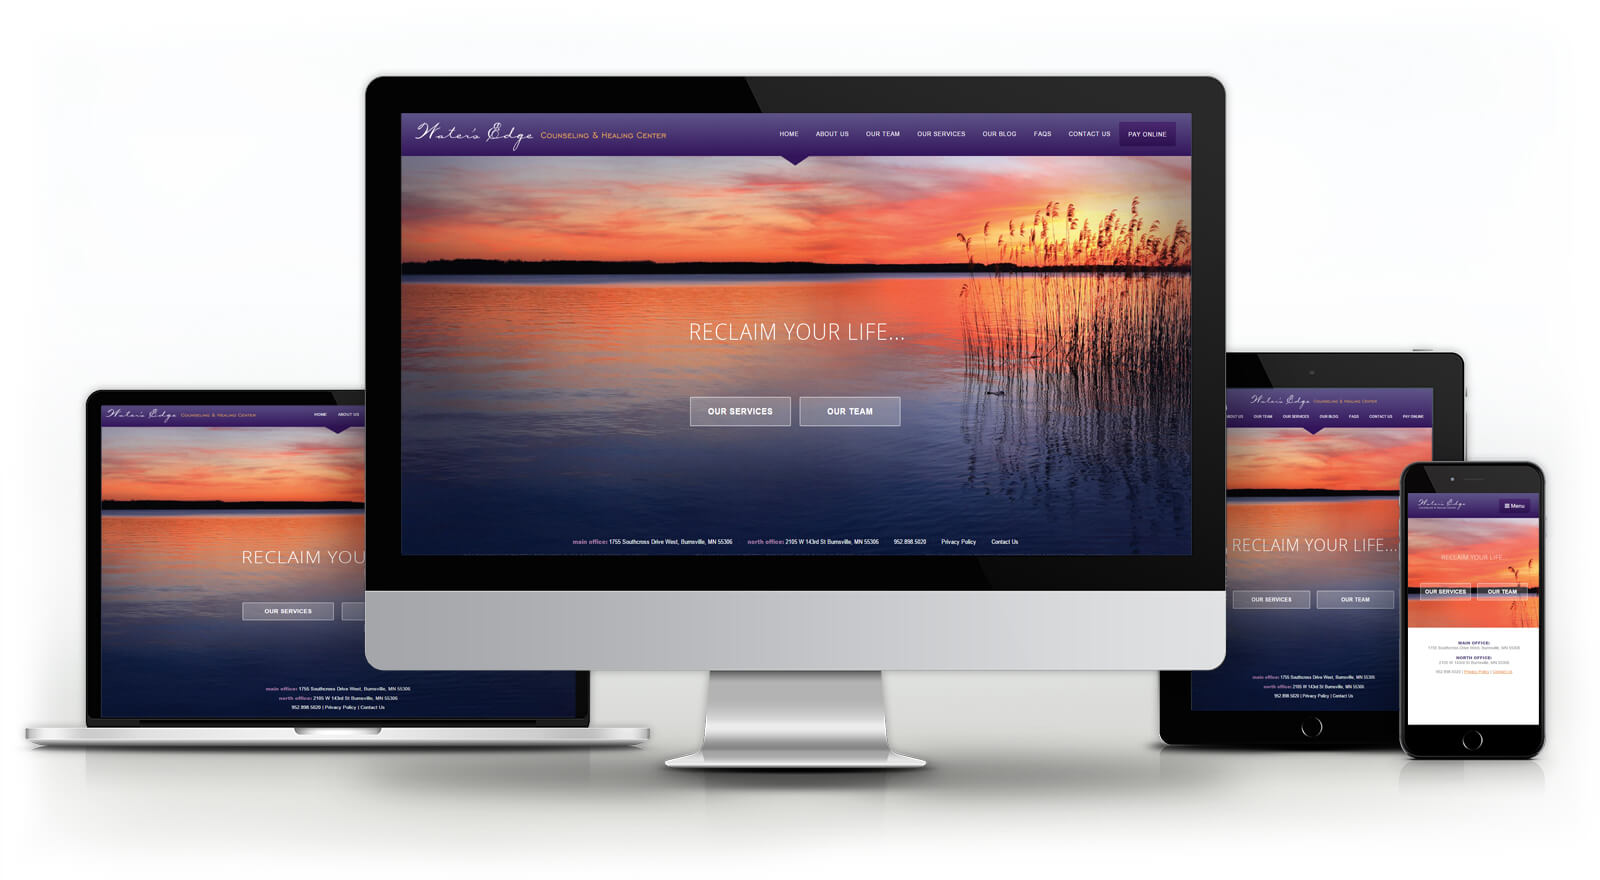 Water's Edge Counseling - Website